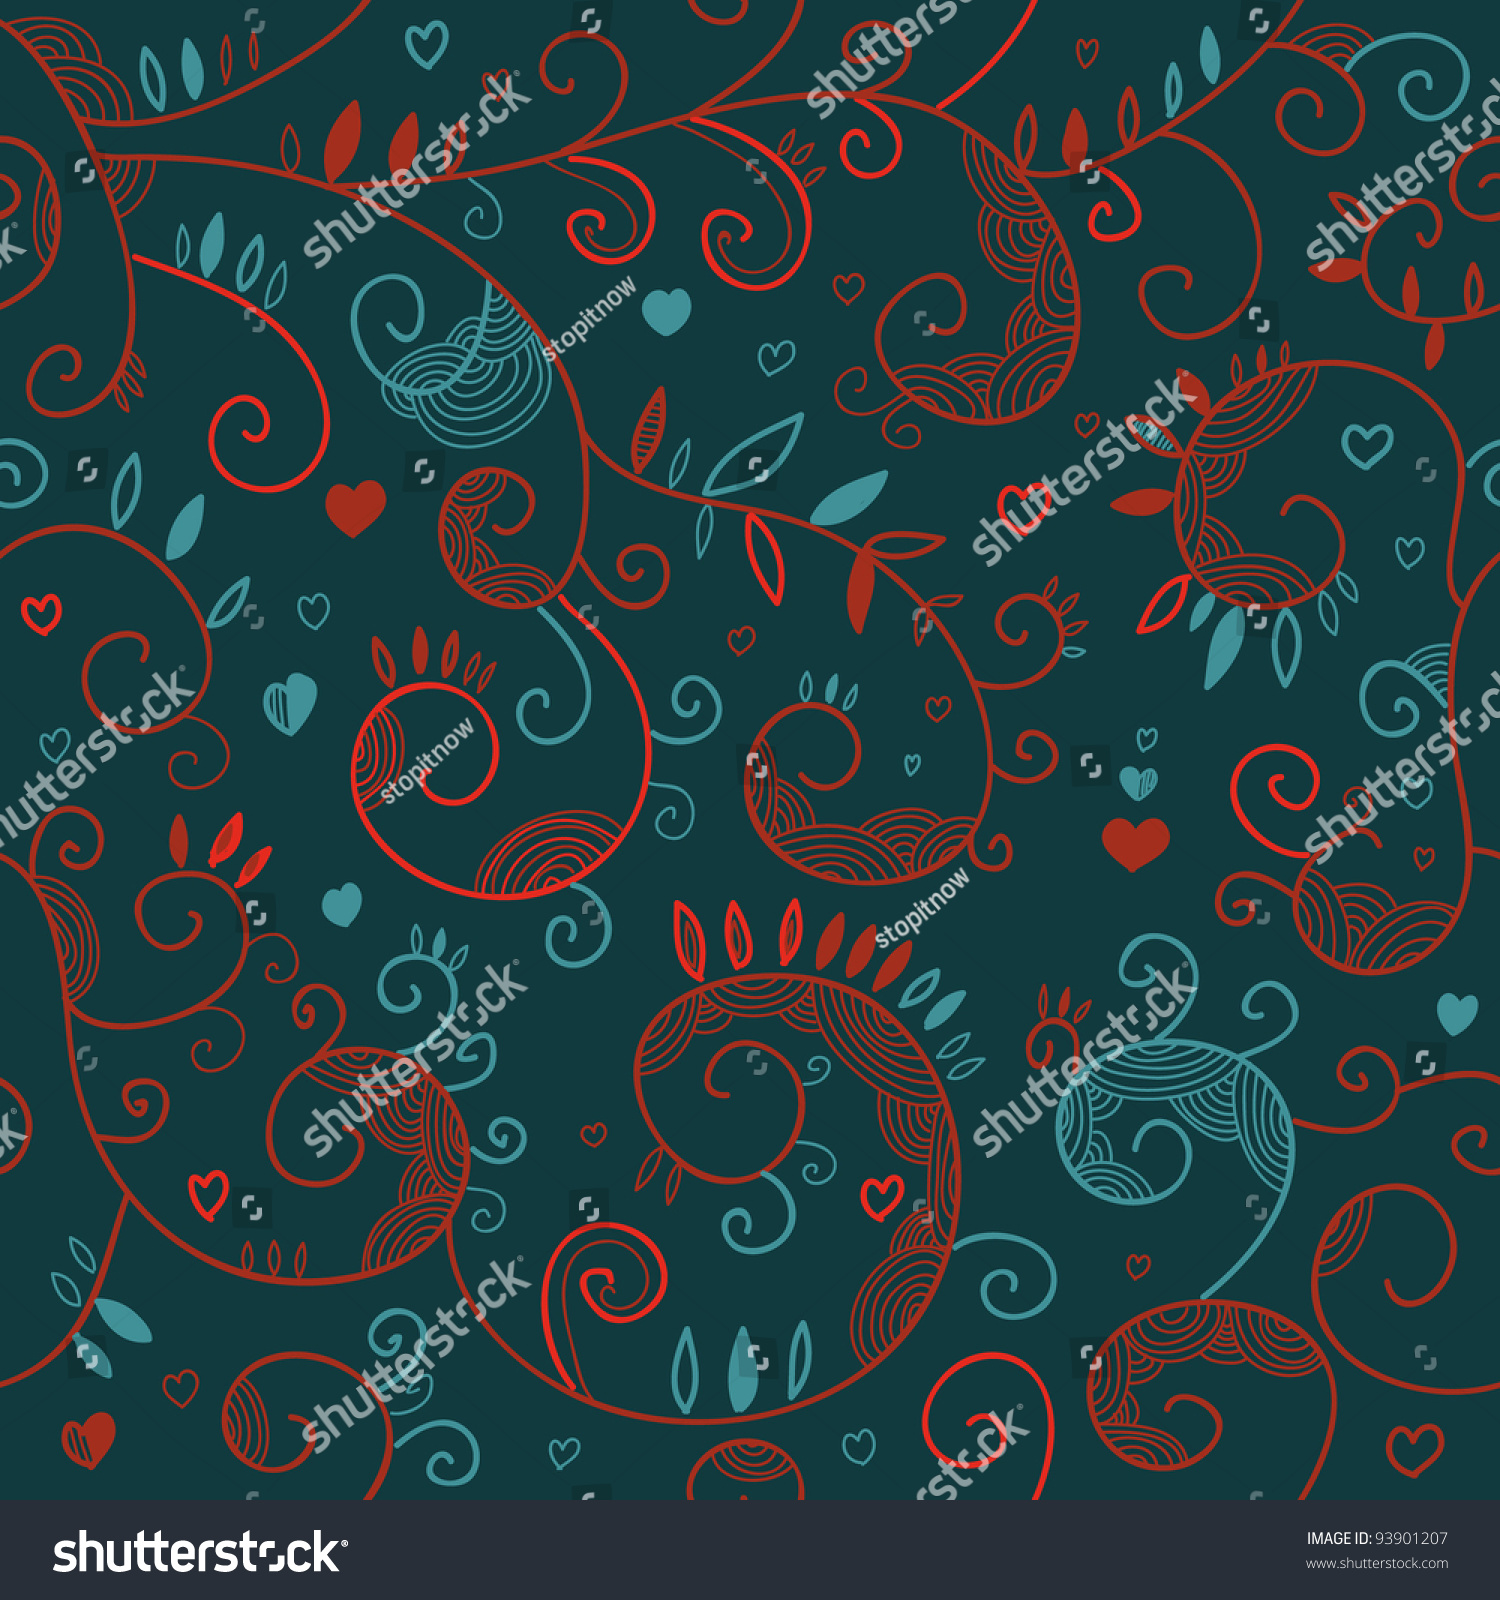 Floral Romantic Seamless Texture Endless Pattern Stock